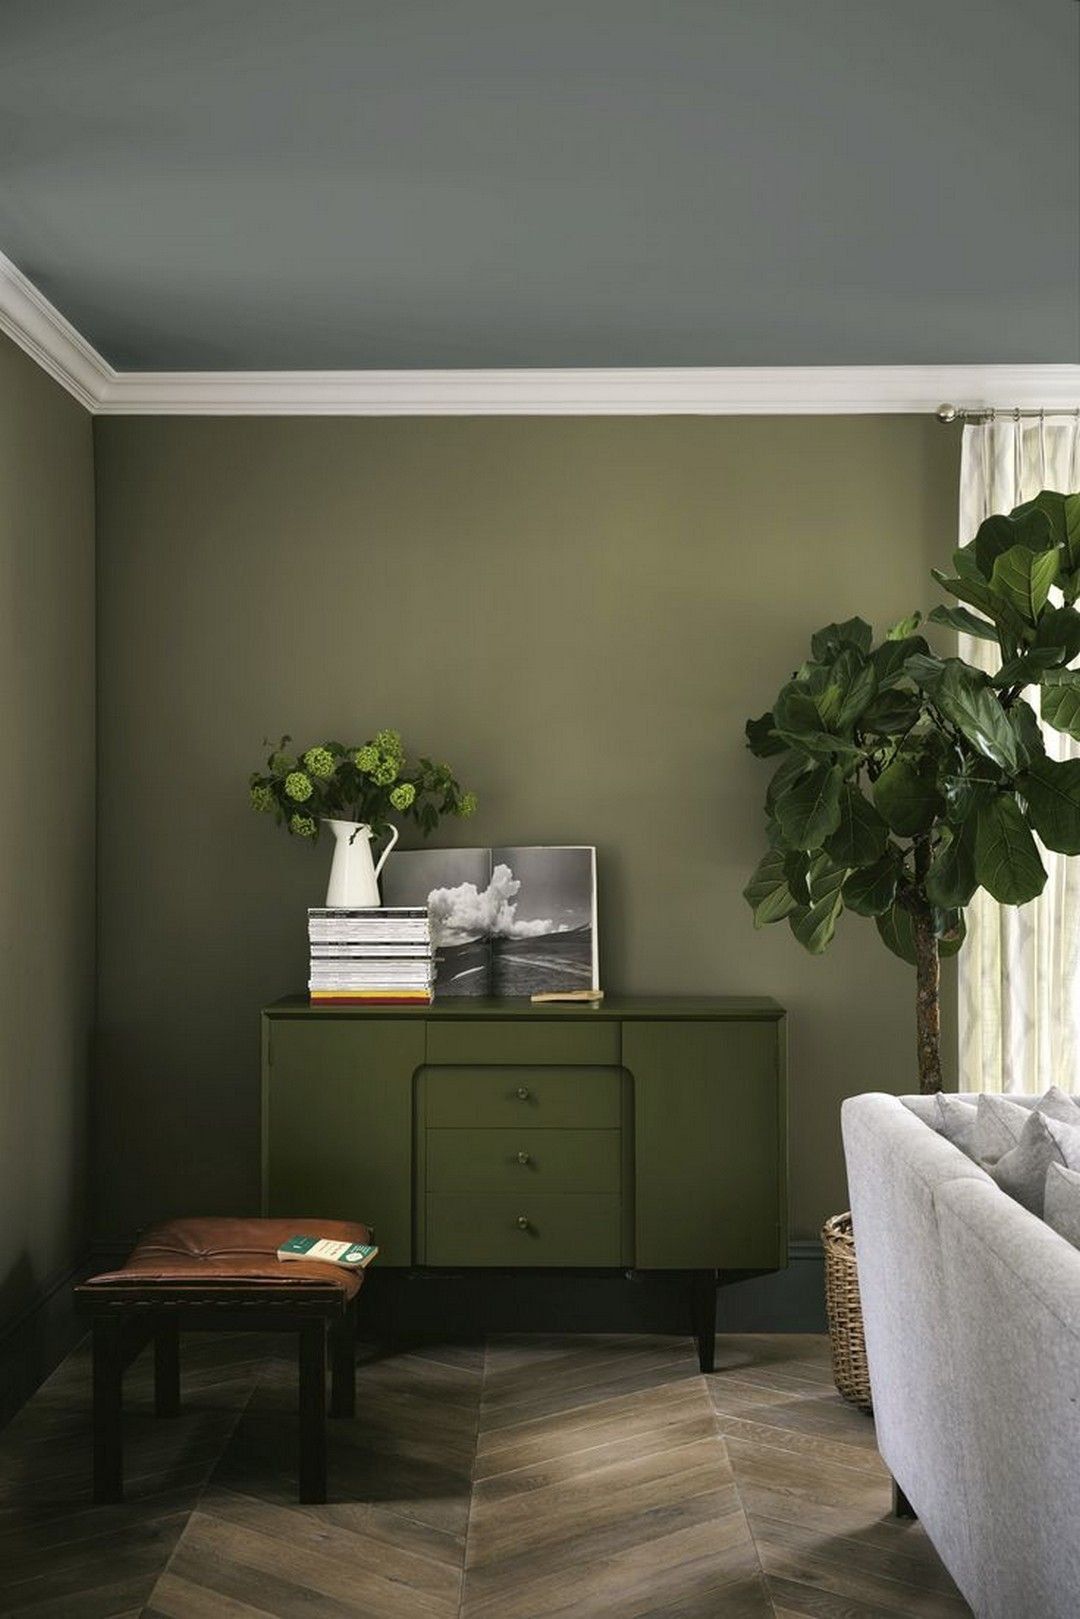 7 Olive Green Paint Ideas That Will Make Any Room Feel More Sophisticated Trending Decor Farrow And Ball Living Room Home Decor Trends Olive green paint living room